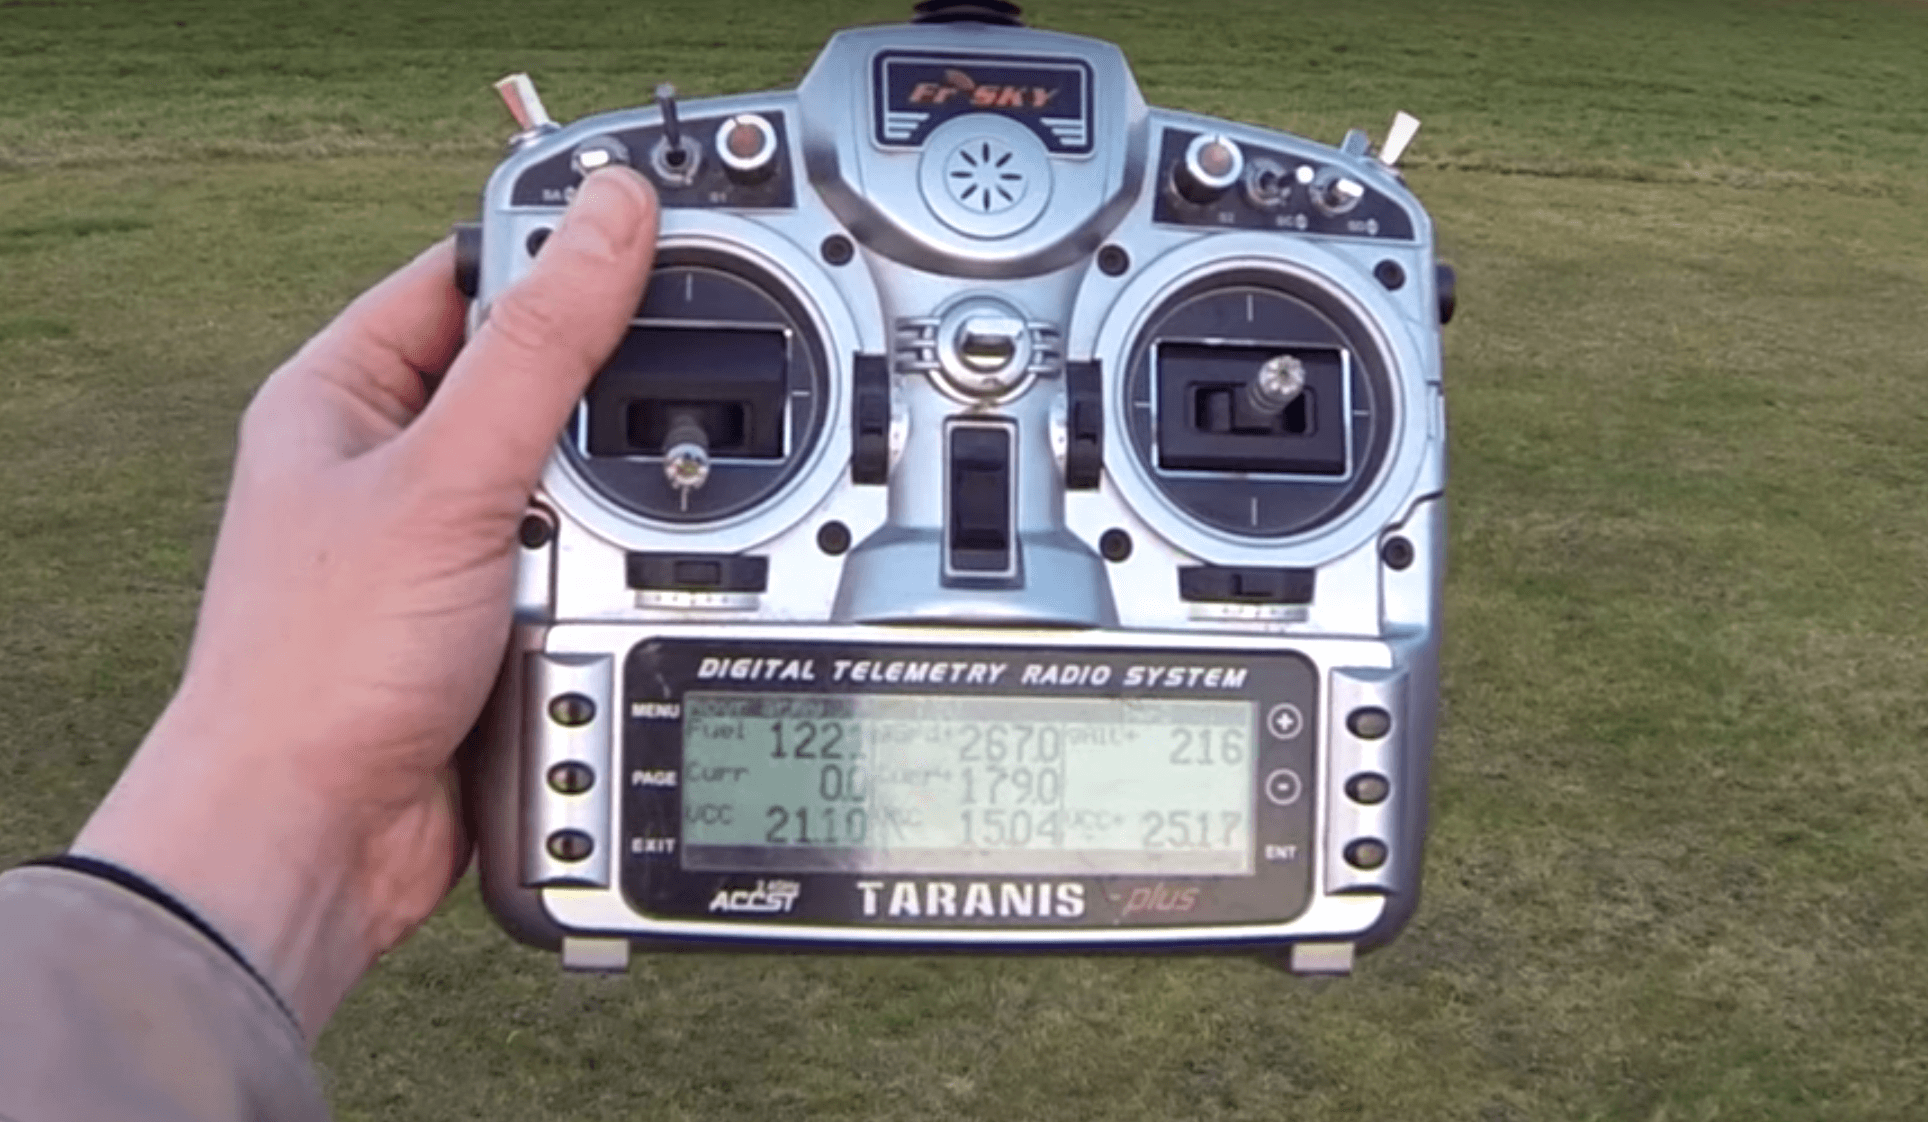 Quadmovr FrSky Taranis X9D Radio Funke FPV Racing Drone Drohne FPVRacingDrone Weltrekord World record Speed Schnellste Drohne der Welt